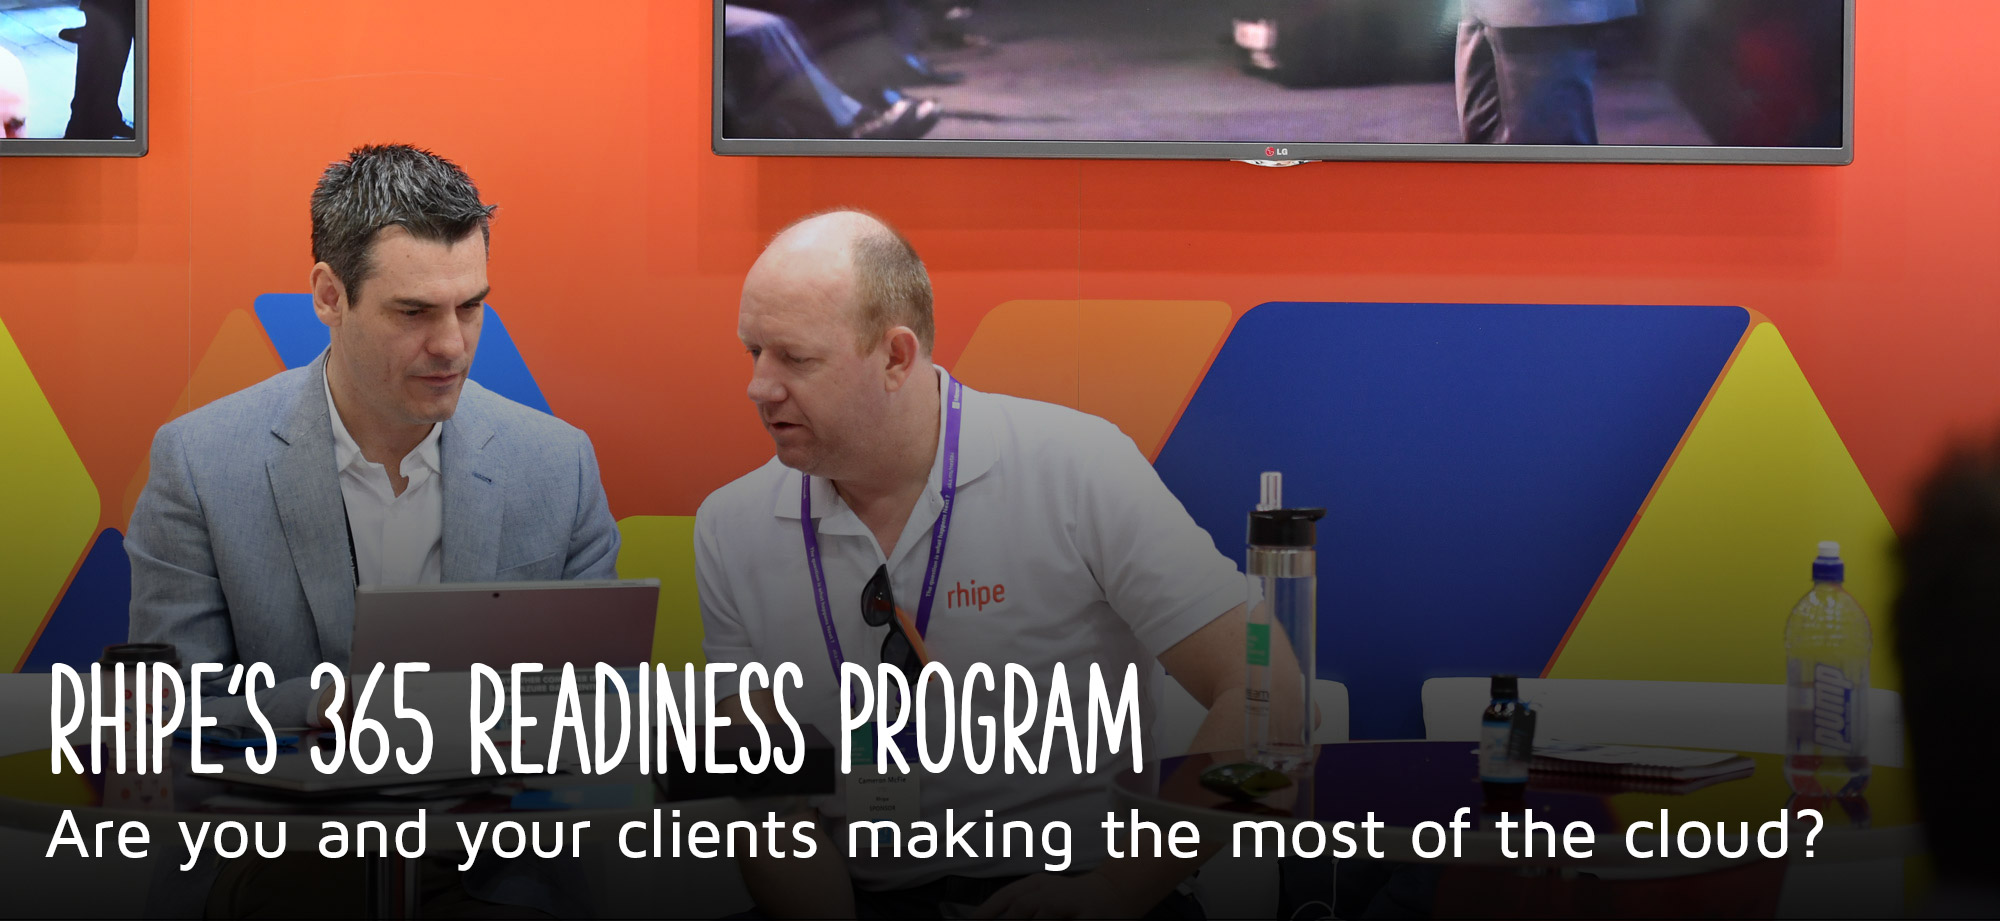 rhipe's 365 Readiness Program Are you and your clients making the most of the cloud?